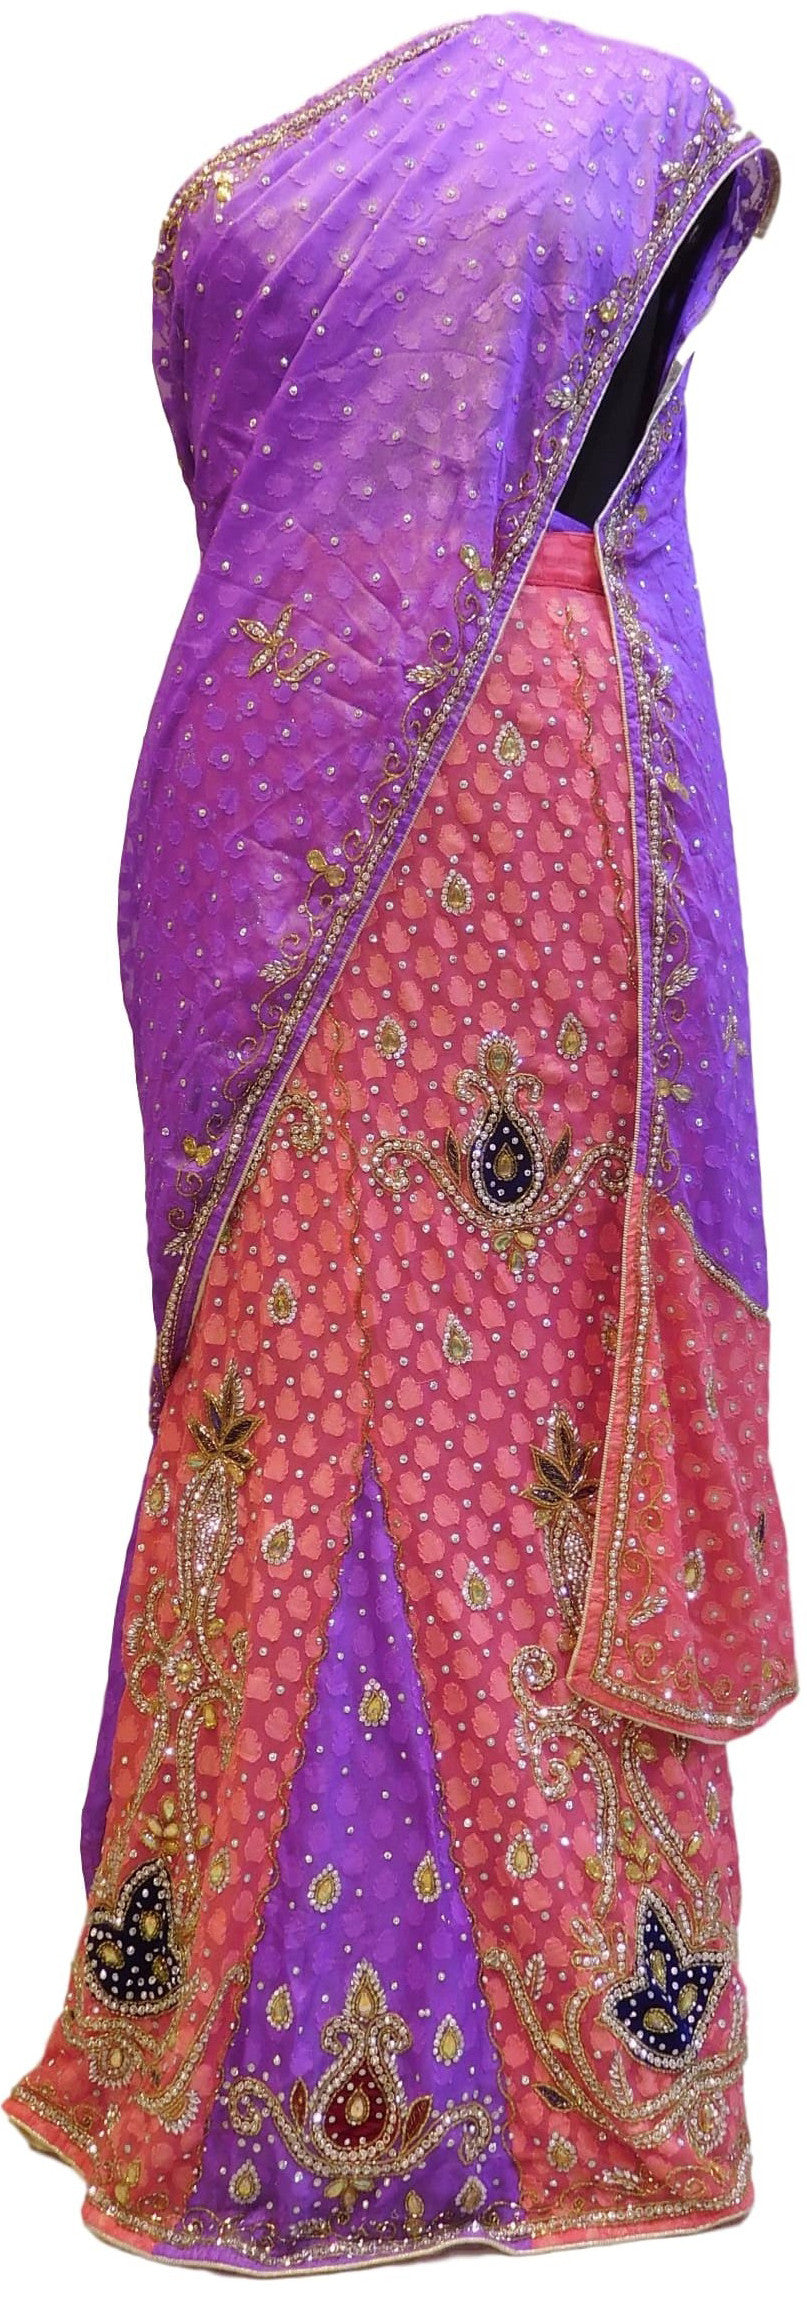 Purple & Pink Designer Bridal Georgette Lahenga Style Hand Embroidery Work Saree Sari